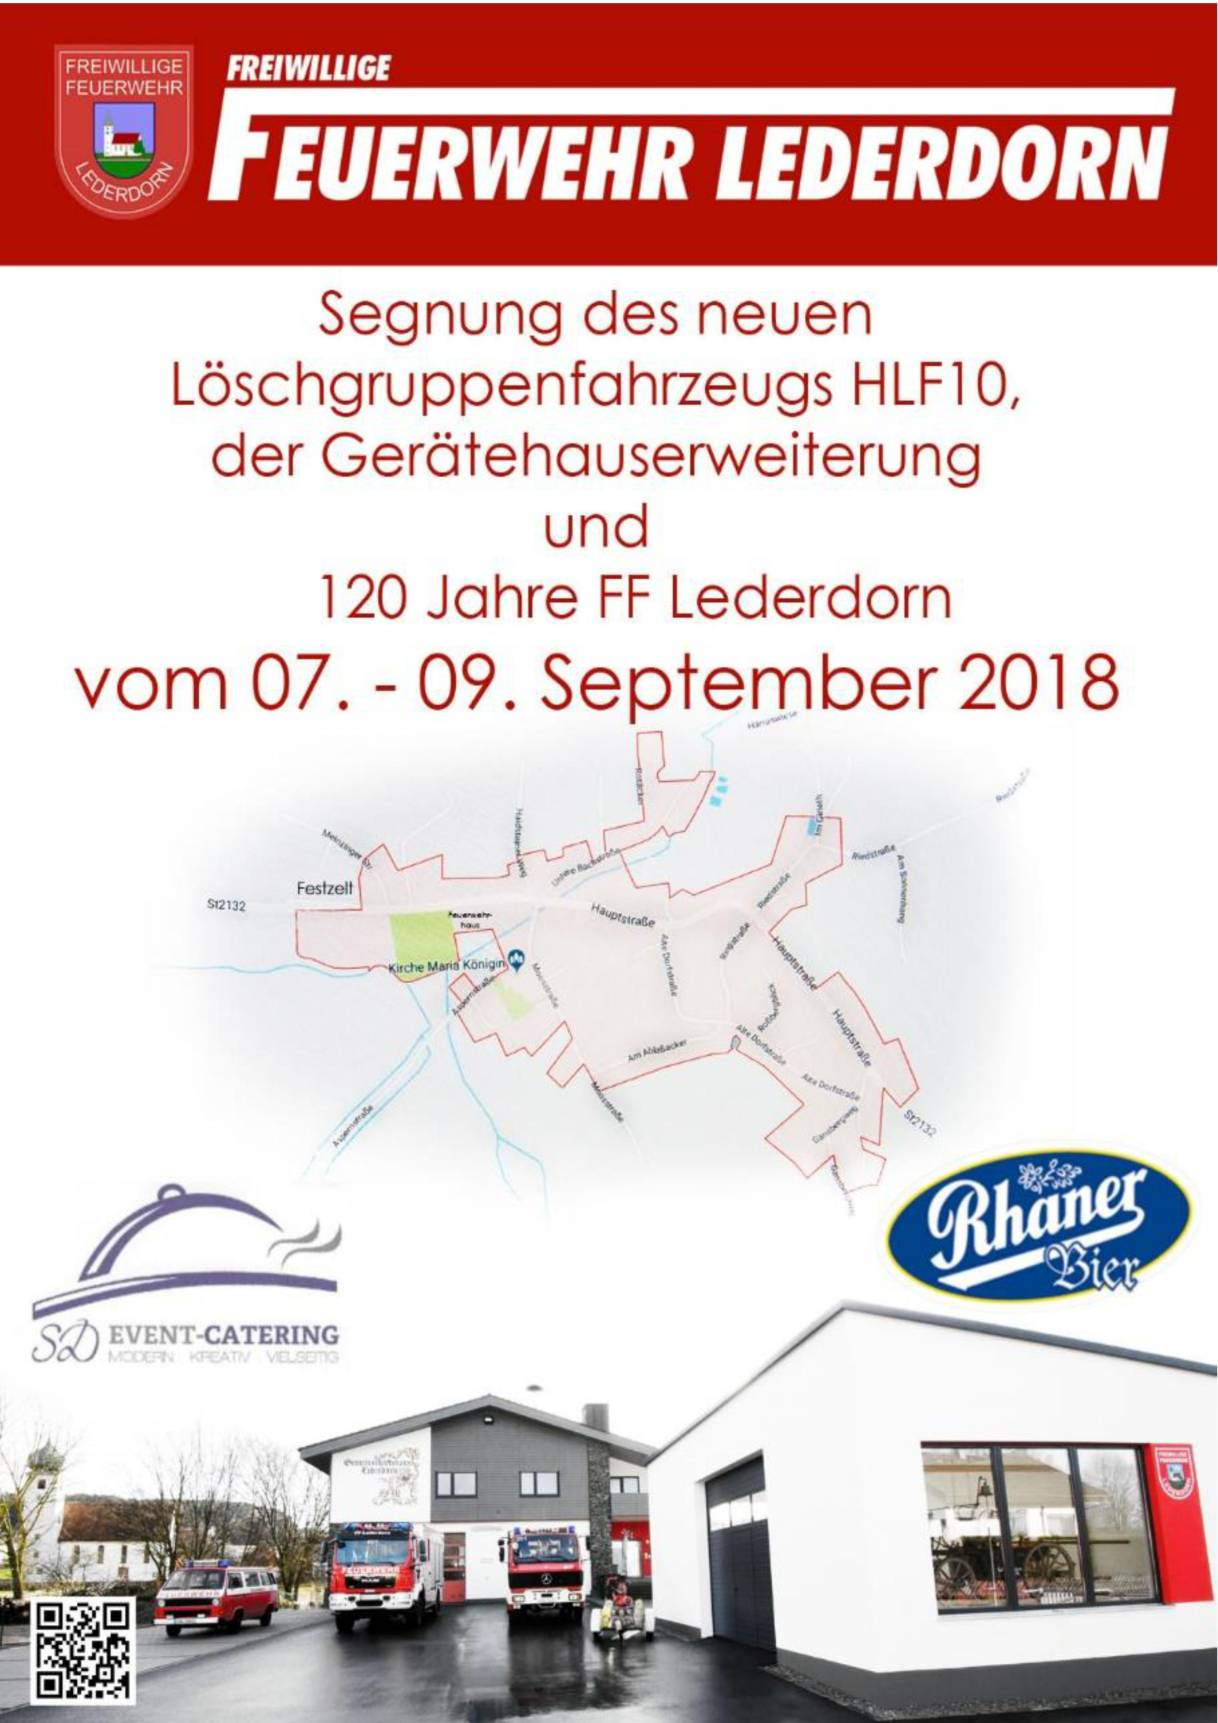 FFW Lederdorn 7. bis 9. September 2018